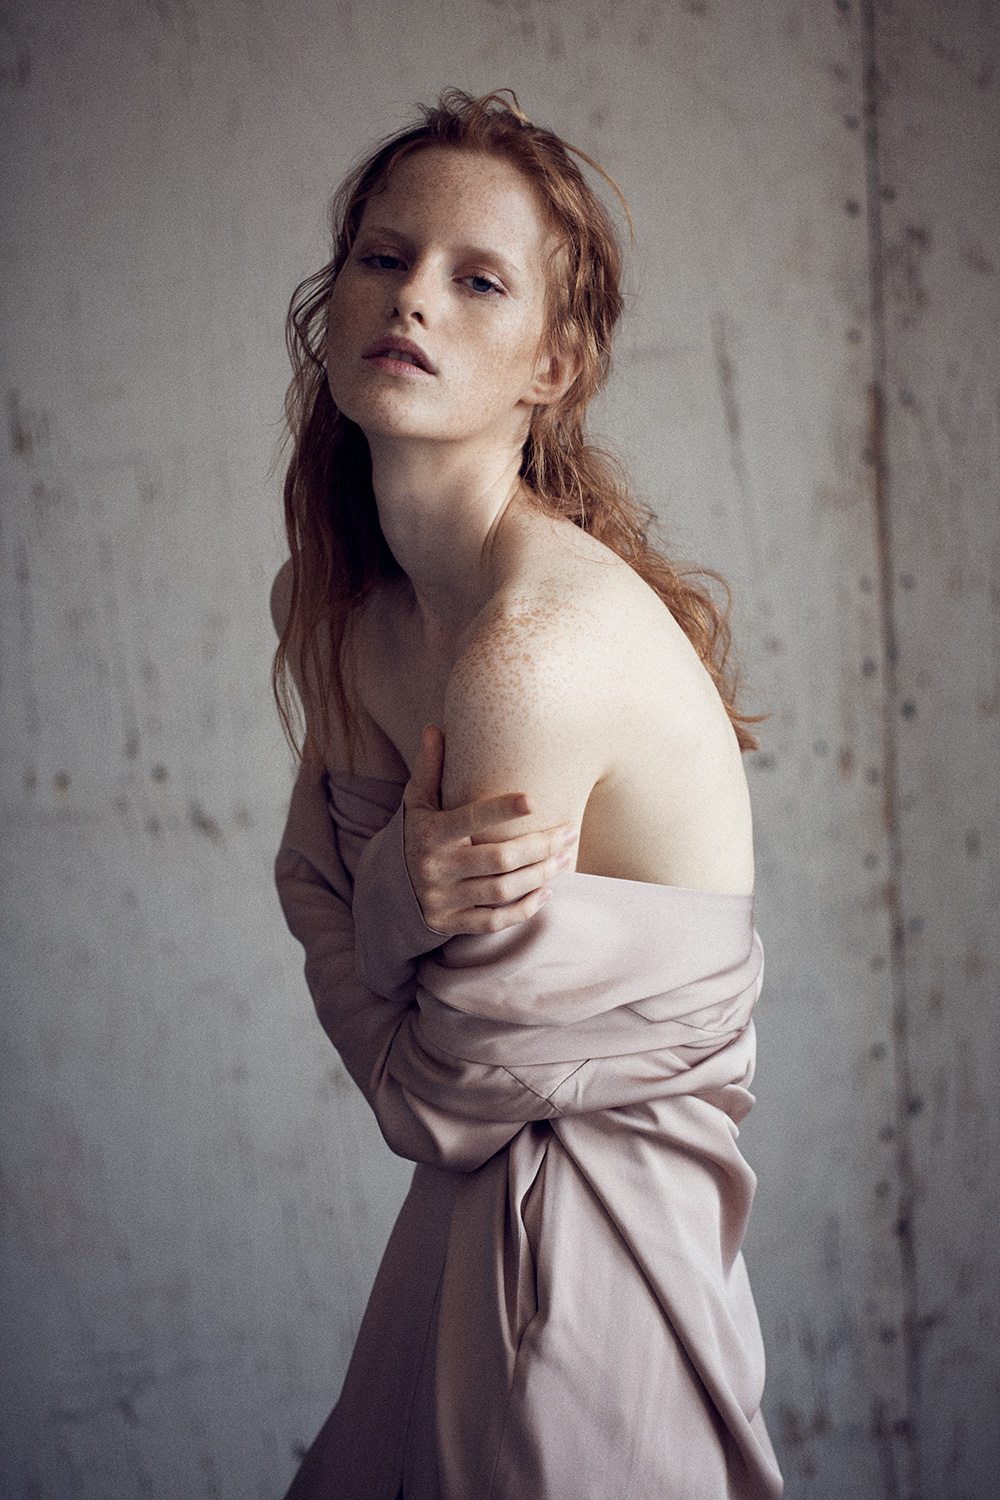 Image of Magdalena Jasek in Nude Satin Dress by Zero + Maria Cornejo. Color photo by Nick Hudson